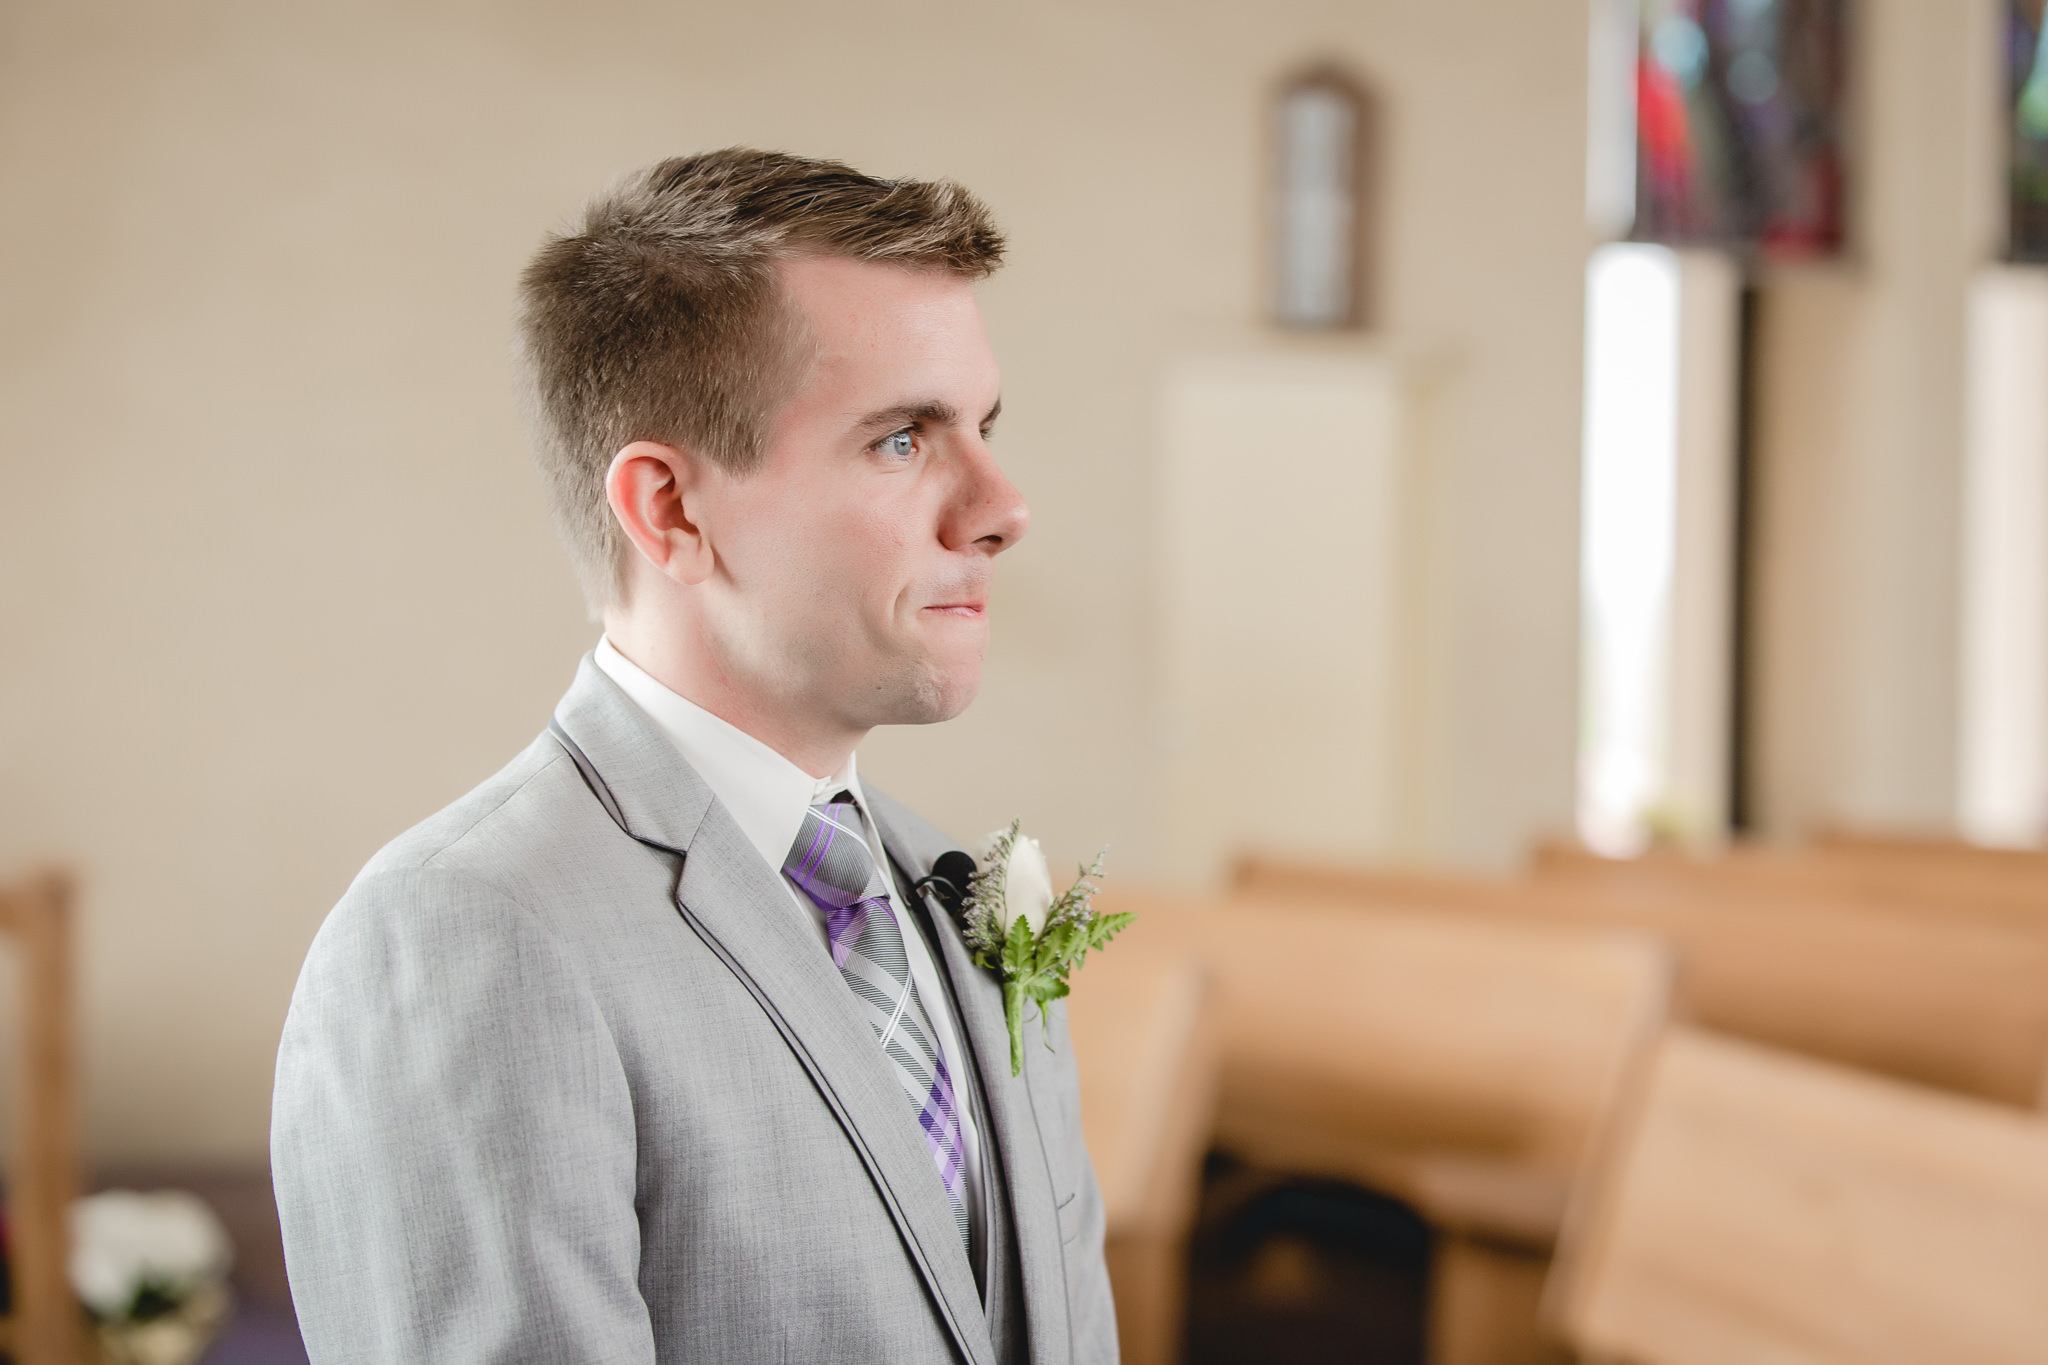 Groom sees his bride for the first time at St. Malachy Catholic Church